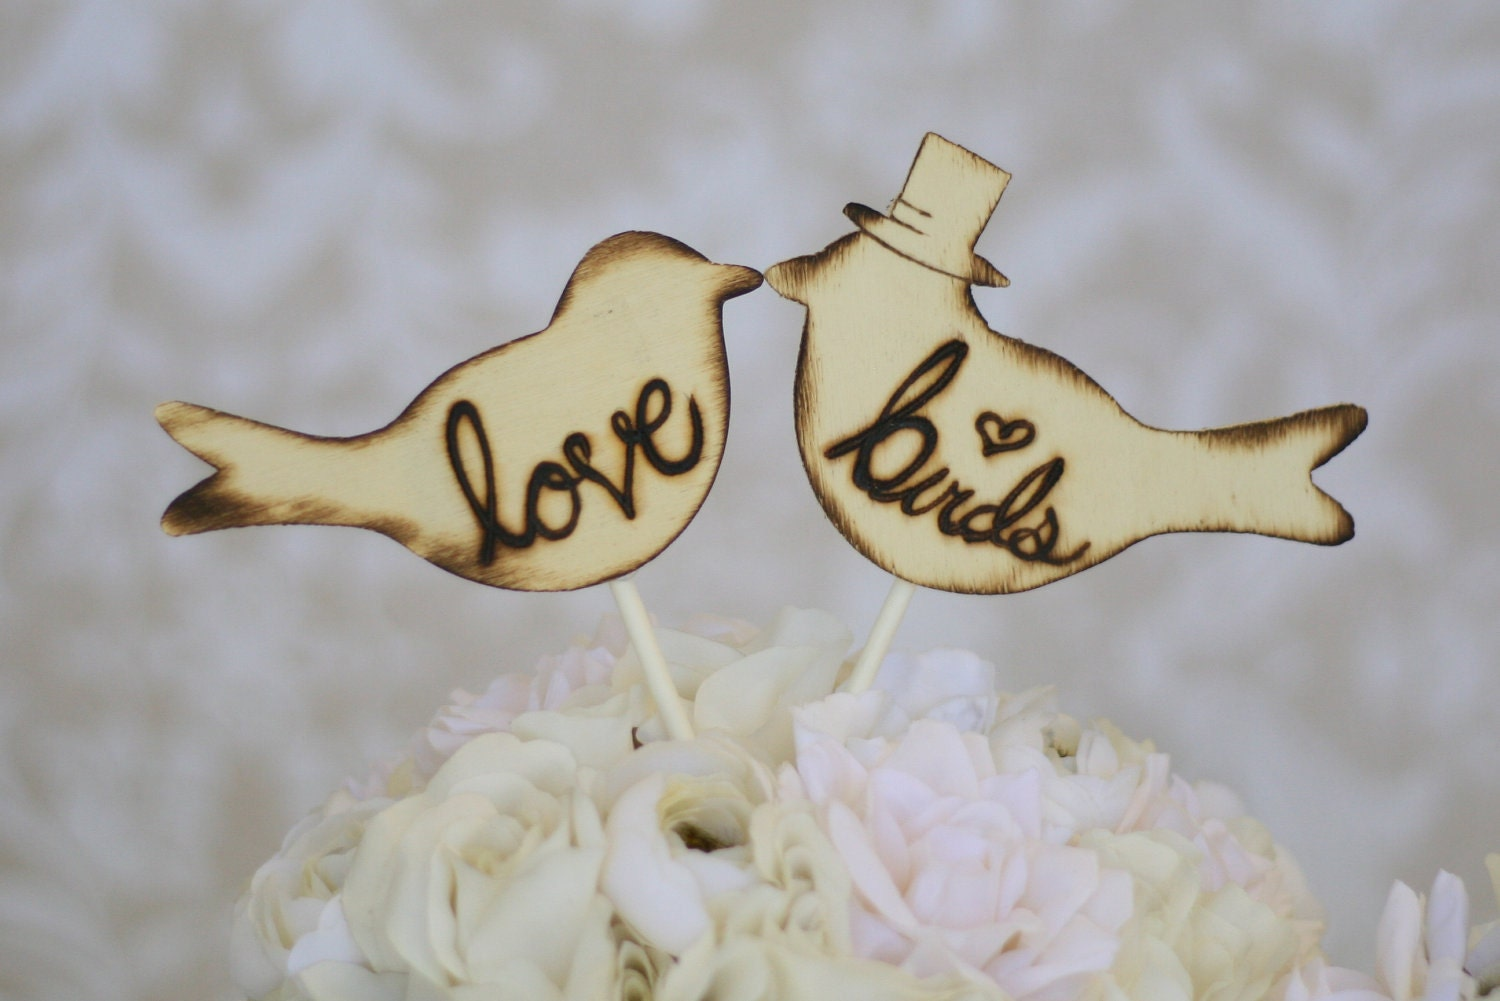 Items Similar To Cake Topper Love Birds With Top Hat Rustic Wedding Decor Item E10045 On Etsy